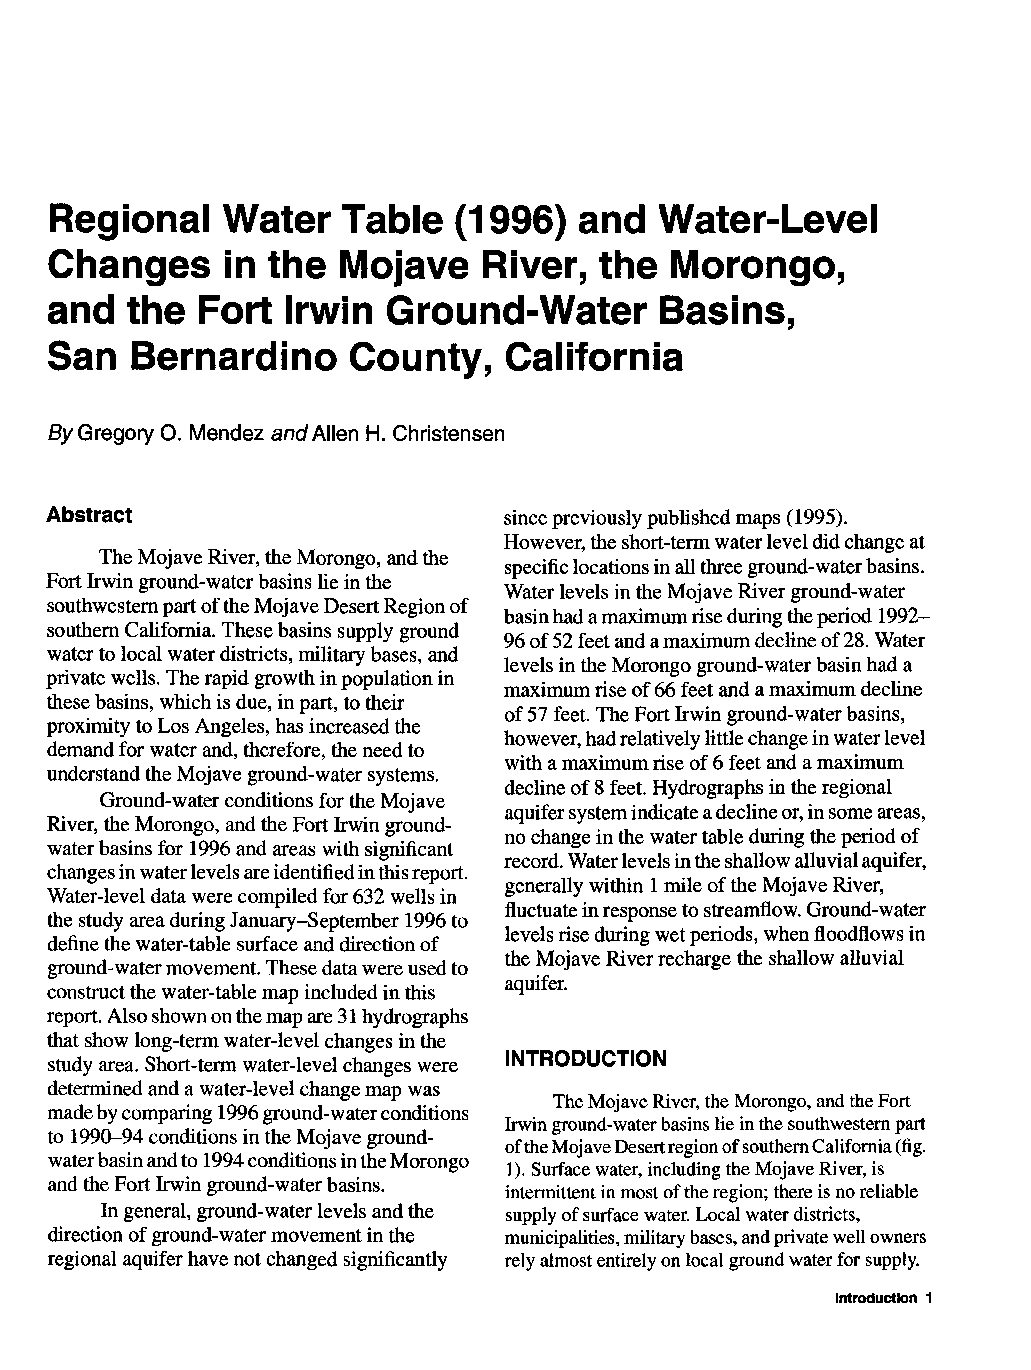 Regional water table (1996) and water-level changes in the Mojave River, Morongo, and Fort Irwin ground-water basins, San Bernardino County